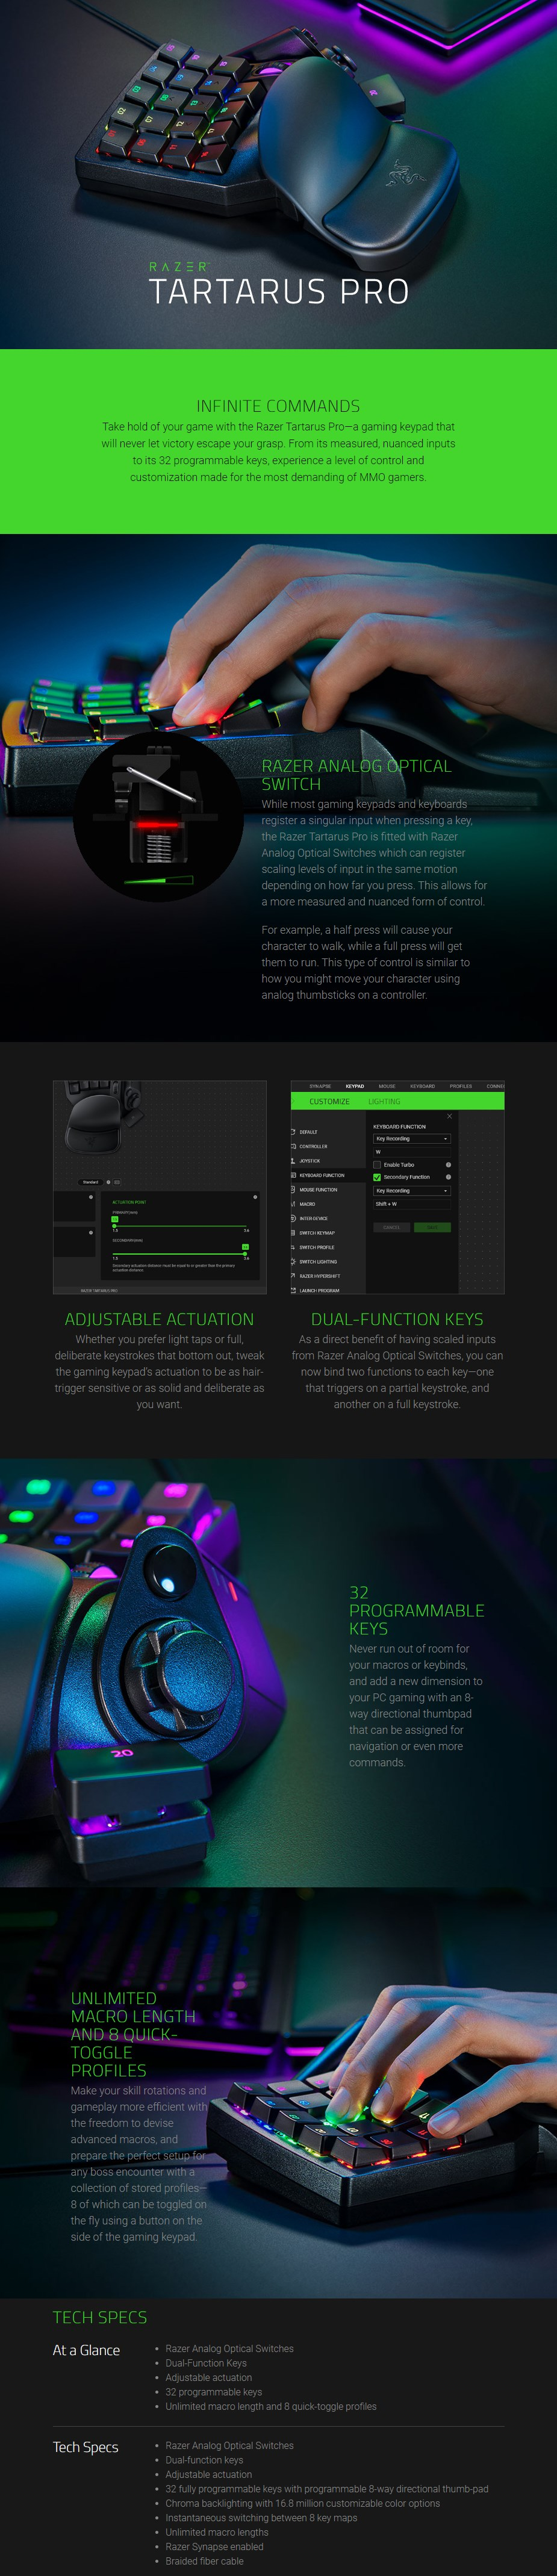 razer-tartarus-pro-chroma-optical-gaming-keypad-black-ac29738.jpg